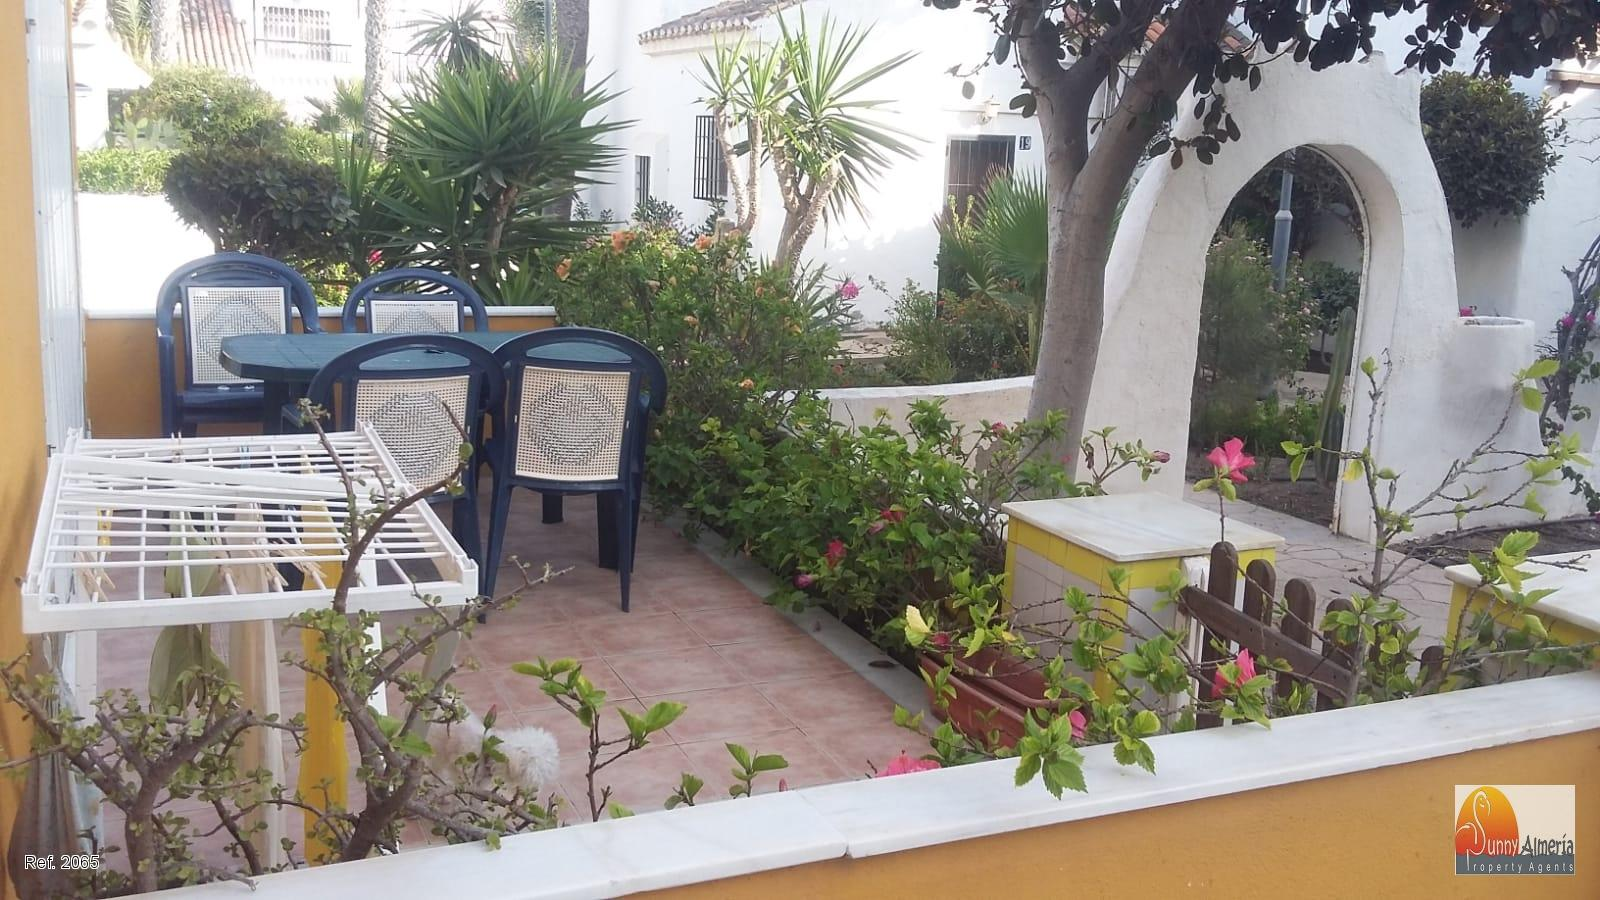 Duplex for rent in Avenida Entremares 112 (Roquetas de Mar), 950 €/month